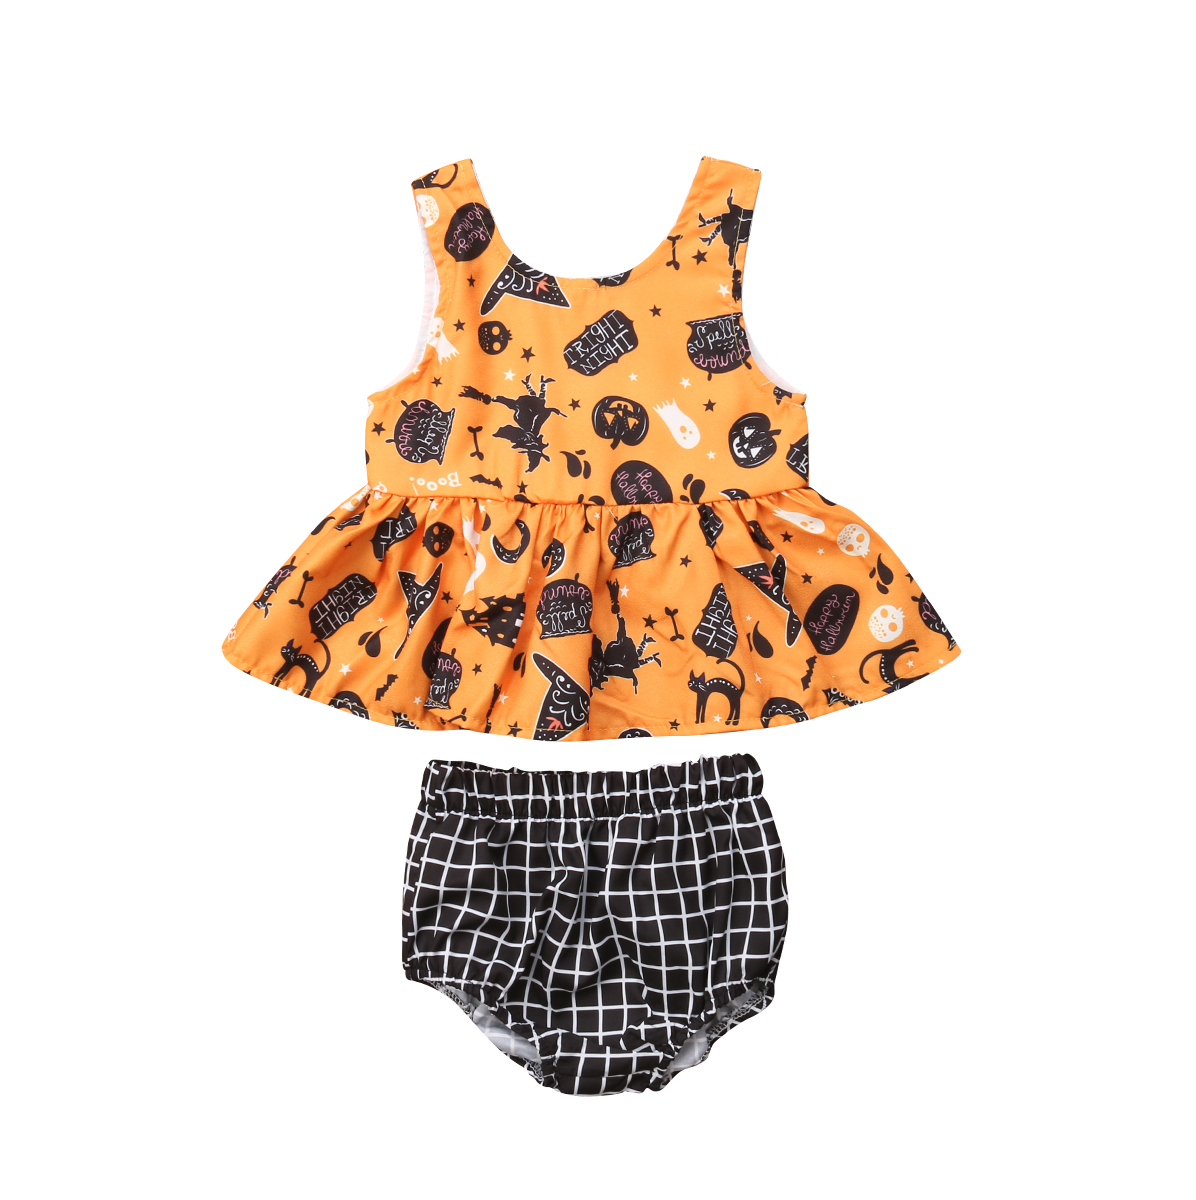 Newborn Baby Girls Halloween Sleeveless Tops Dress Plaid Pants Outfits Clothes